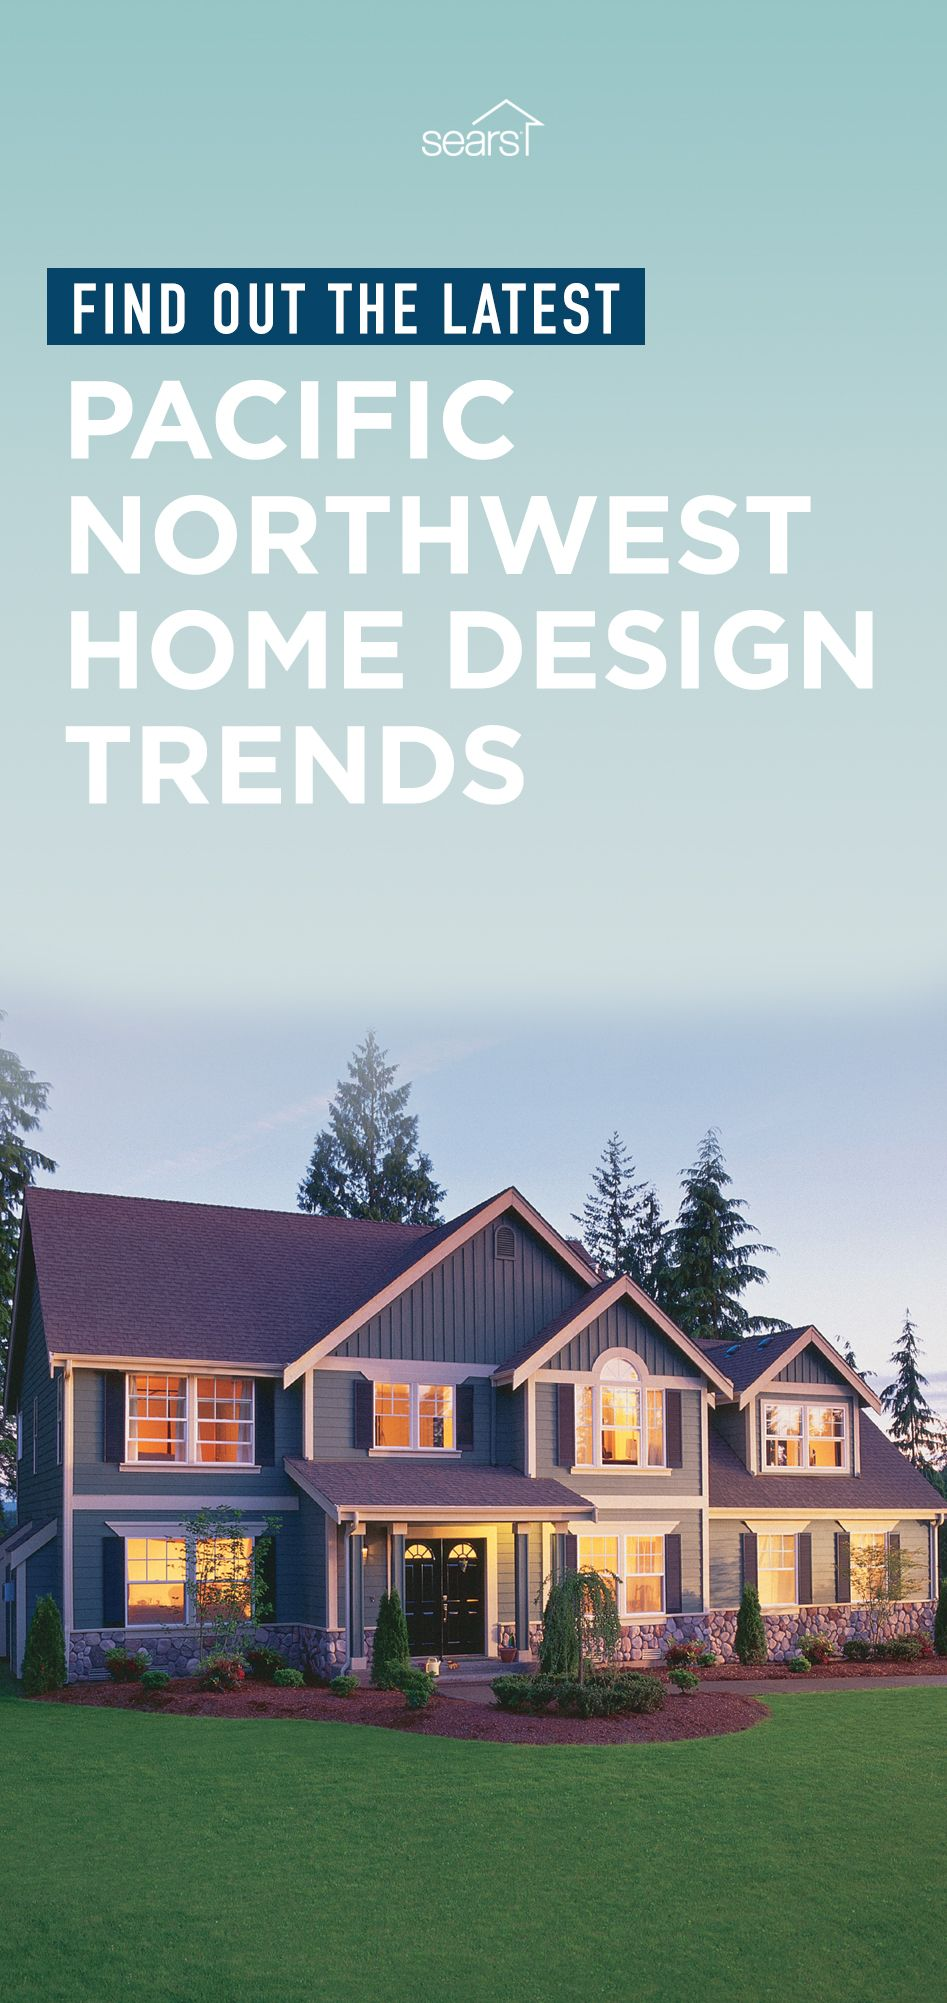 Home improvement and design trends vary by